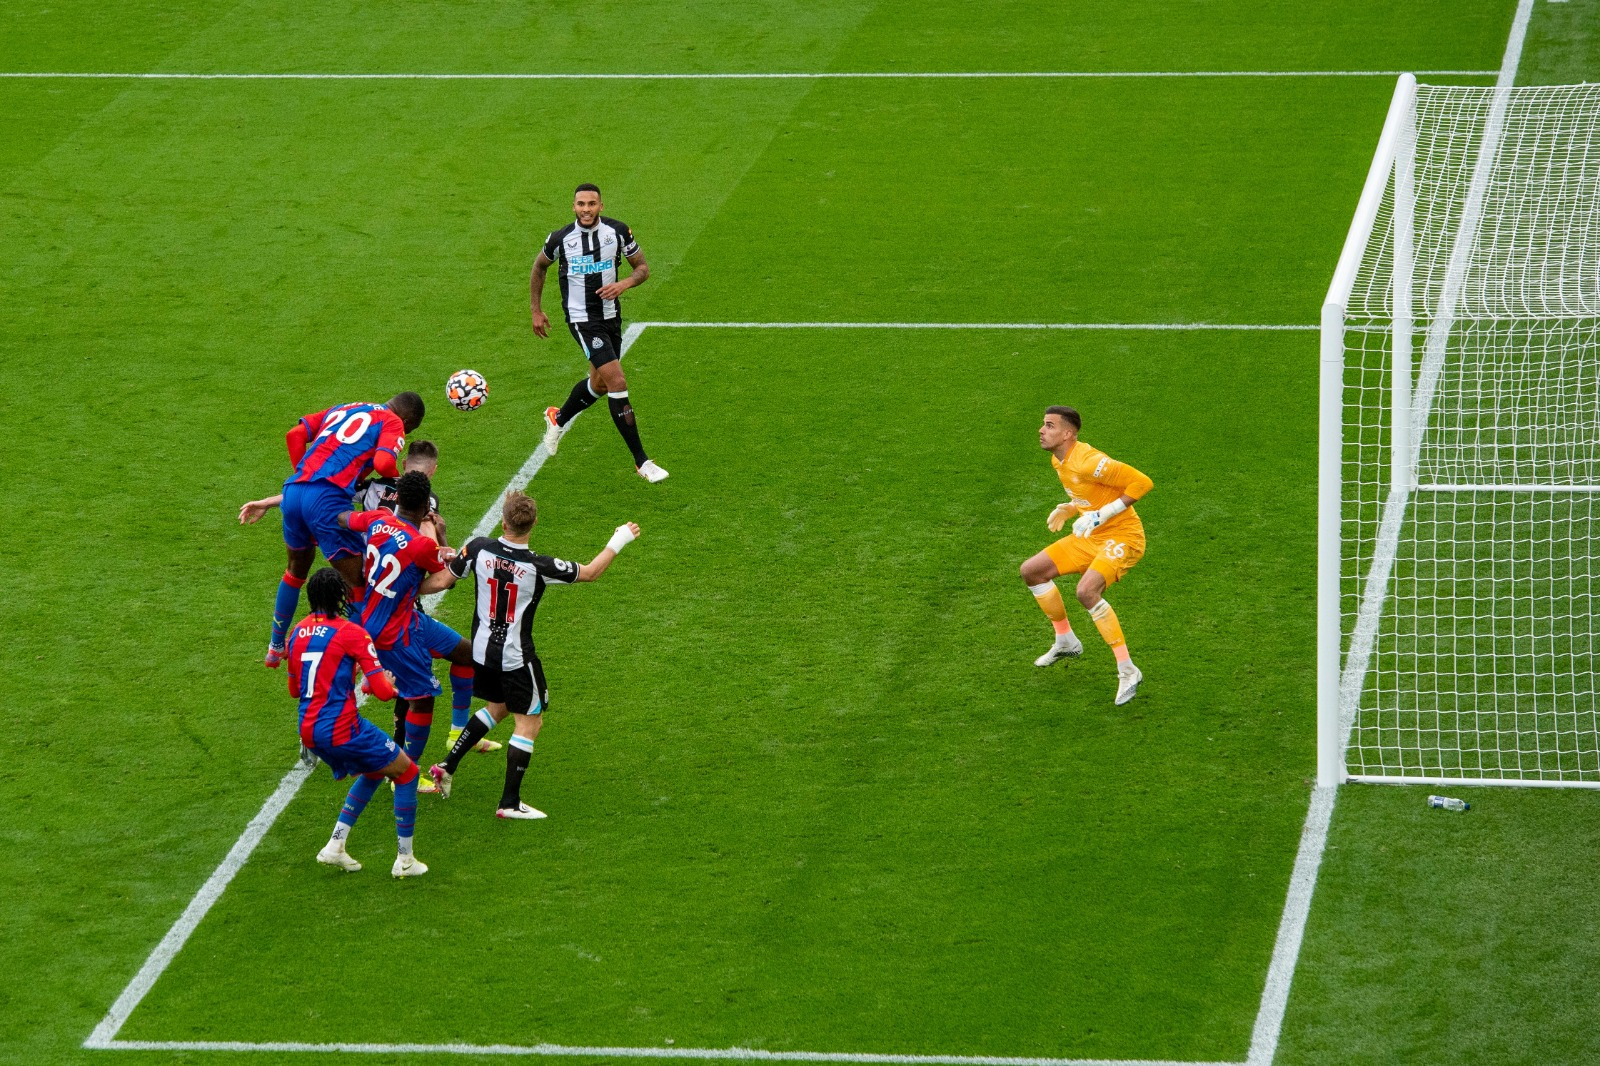 Report: Dominant Palace held level by resolute Newcastle side